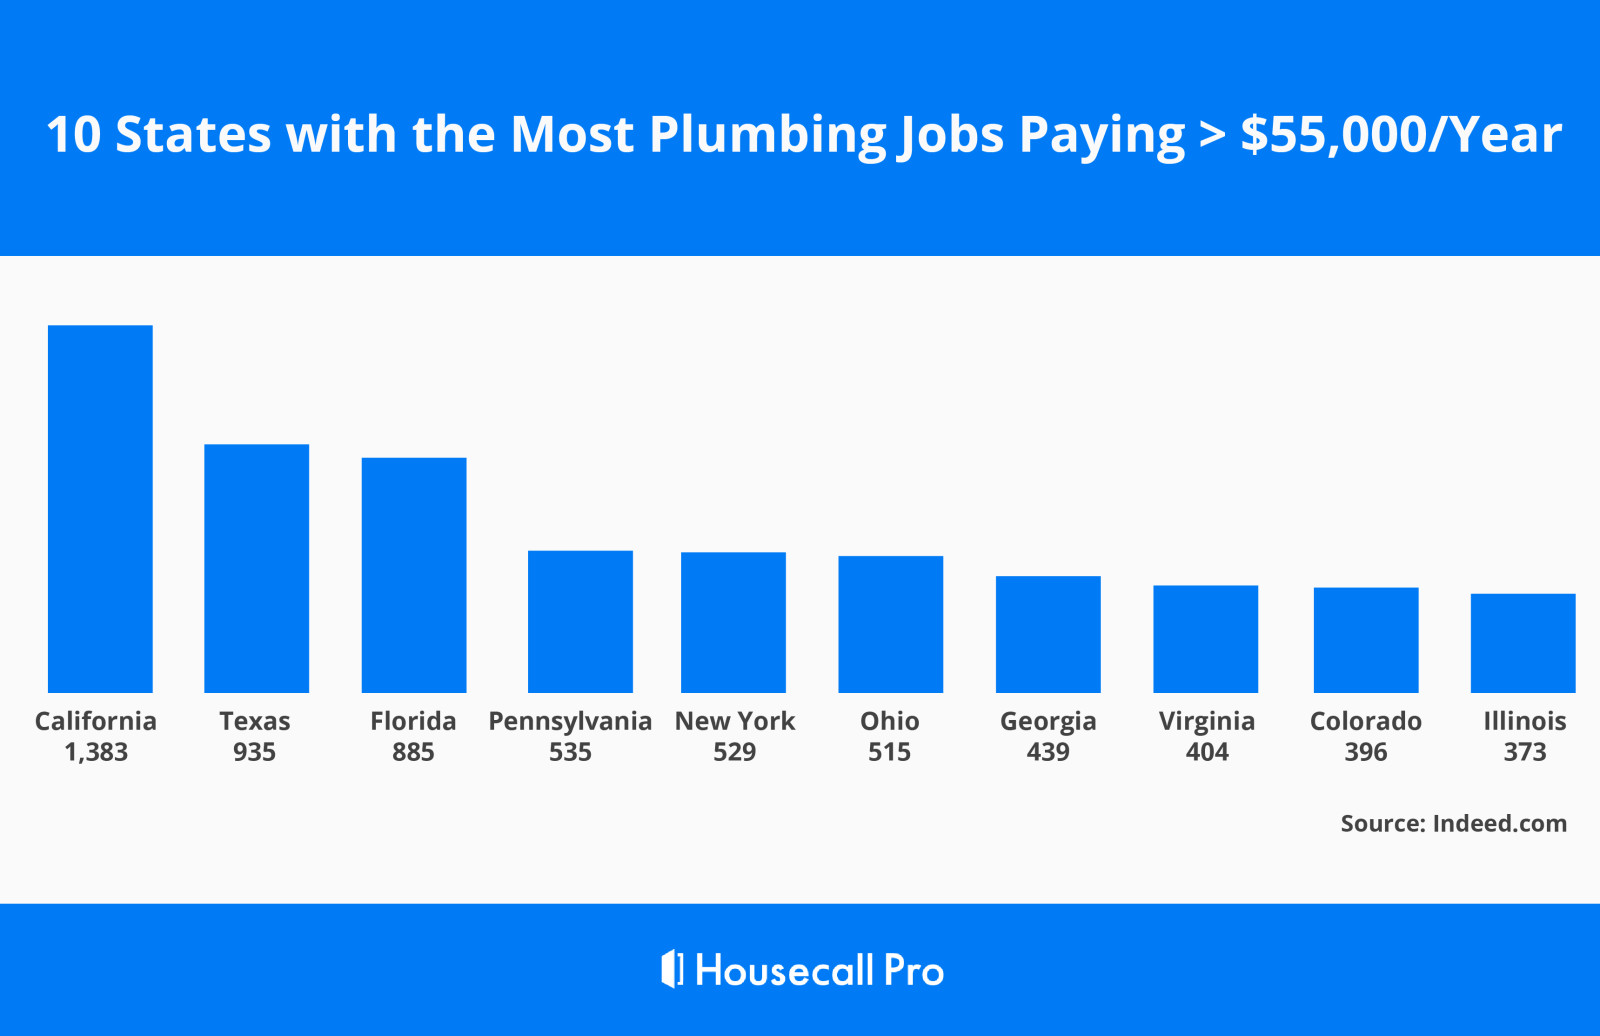 10 States with the Most Plumbing Jobs Paying Over $55,000